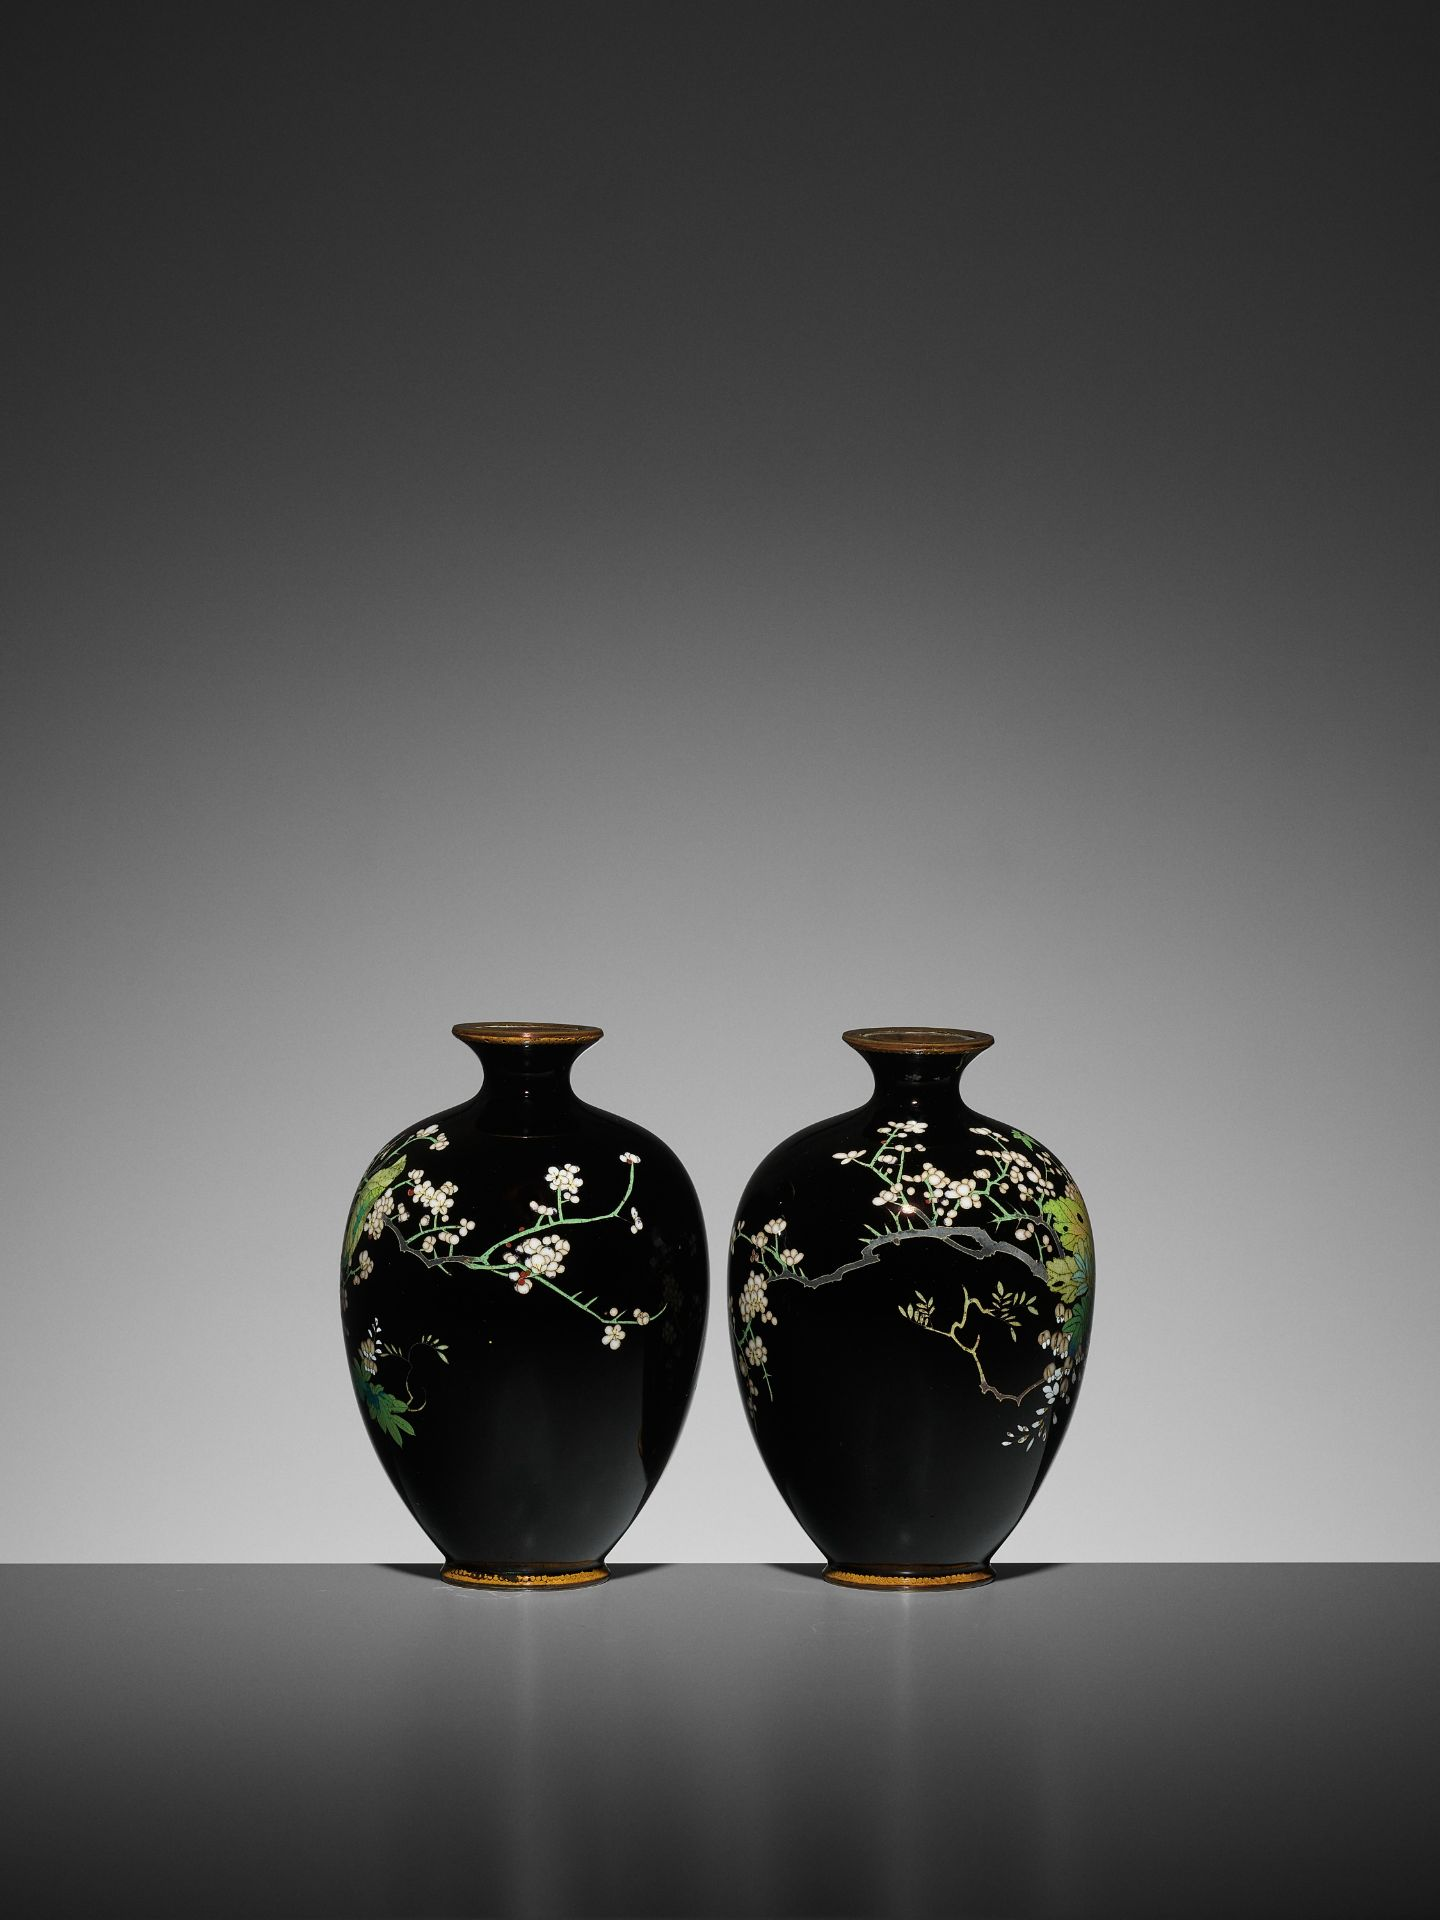 A PAIR OF SMALL CLOISONNE VASES - Image 4 of 7